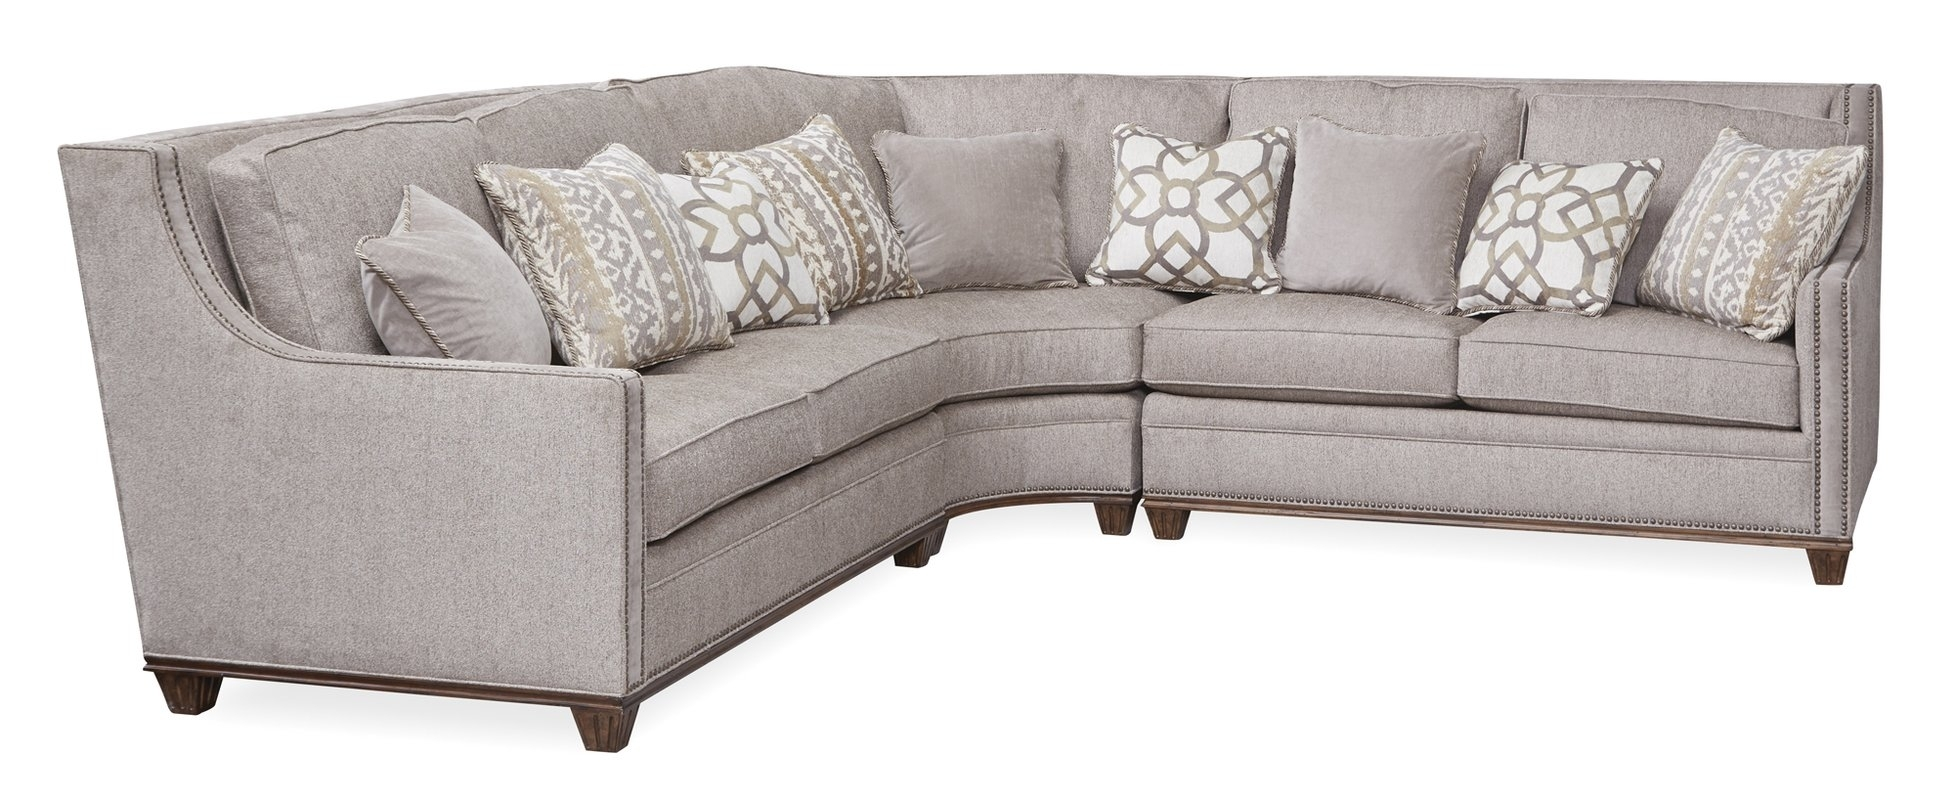 Astoria Grand Memphis Sectional & Reviews | Wayfair Inside Memphis Sectional Sofas (Image 3 of 10)